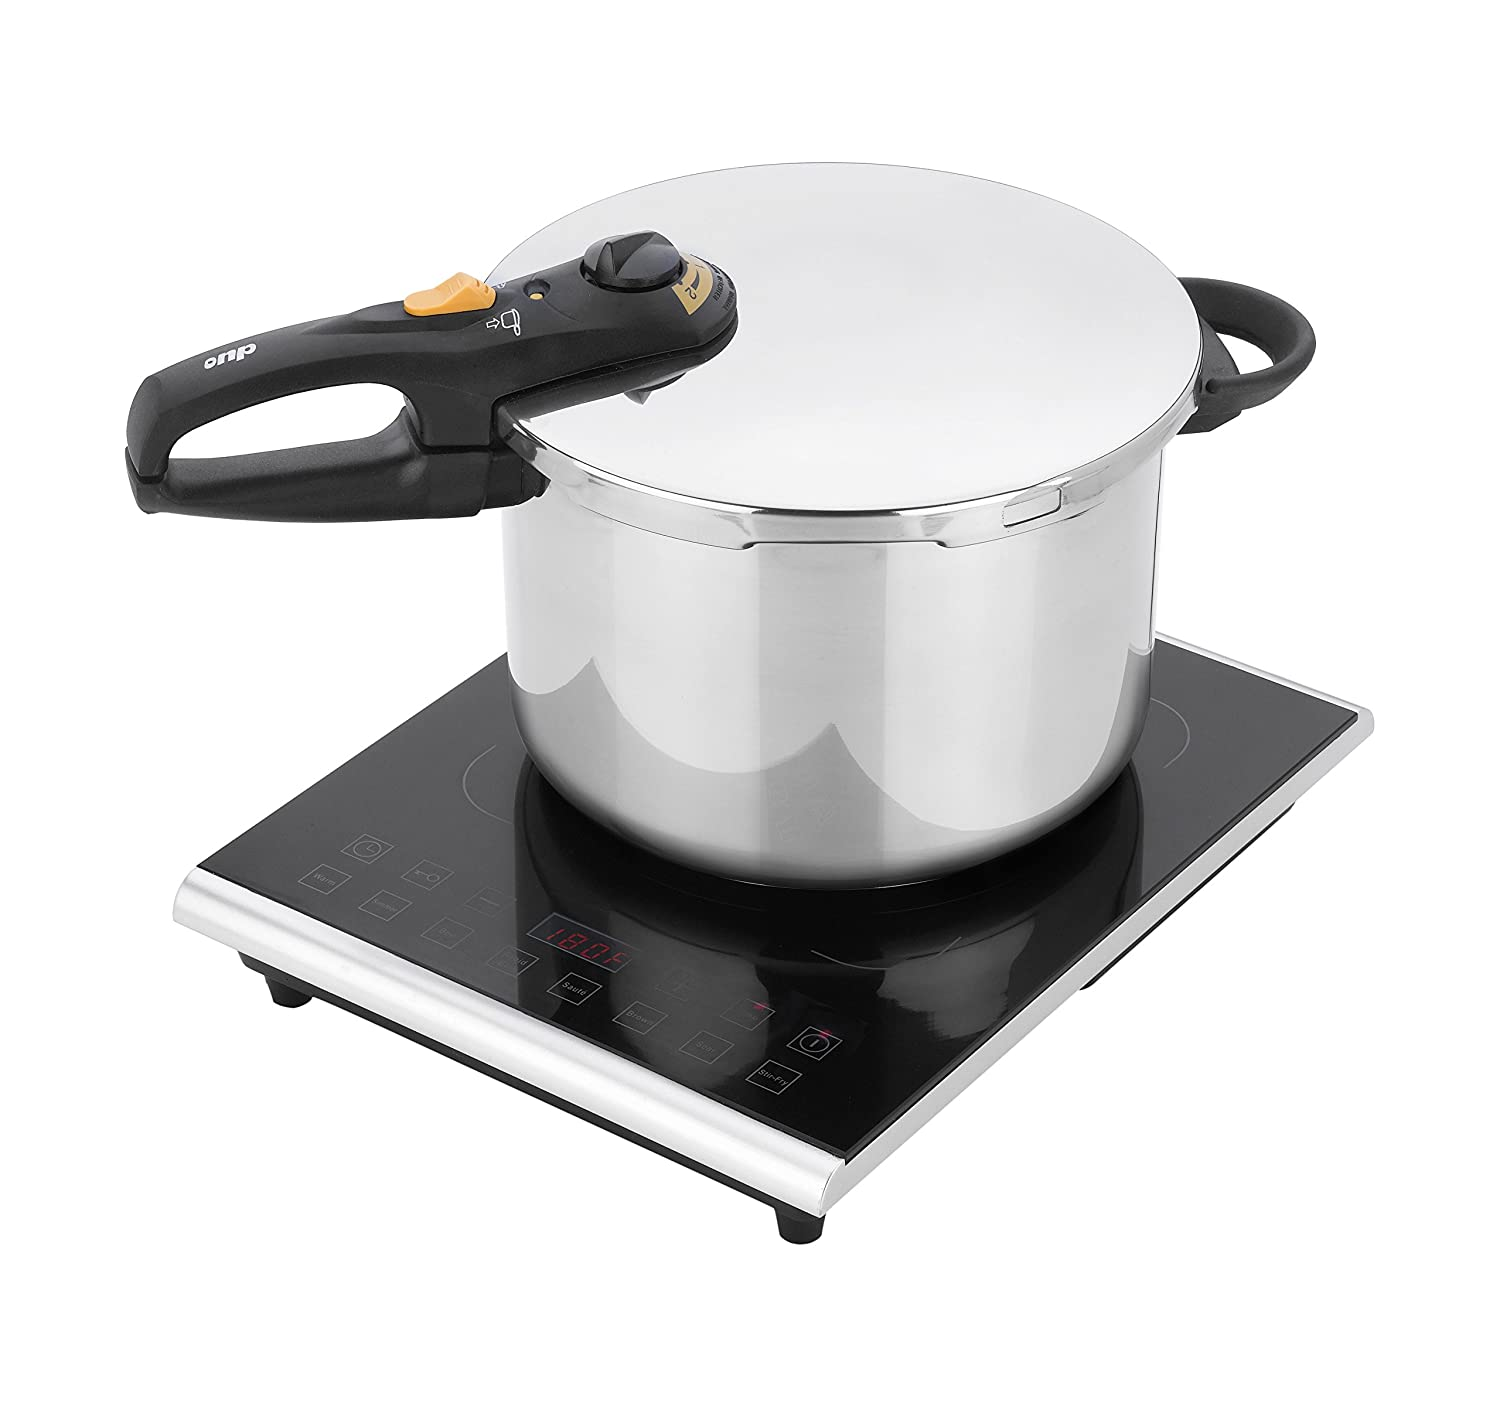 Charming Amazon.com: Fagor Portable 1800 Watt Induction PRO Magnetic Cooktop, Black    670041900: Kitchen U0026 Dining